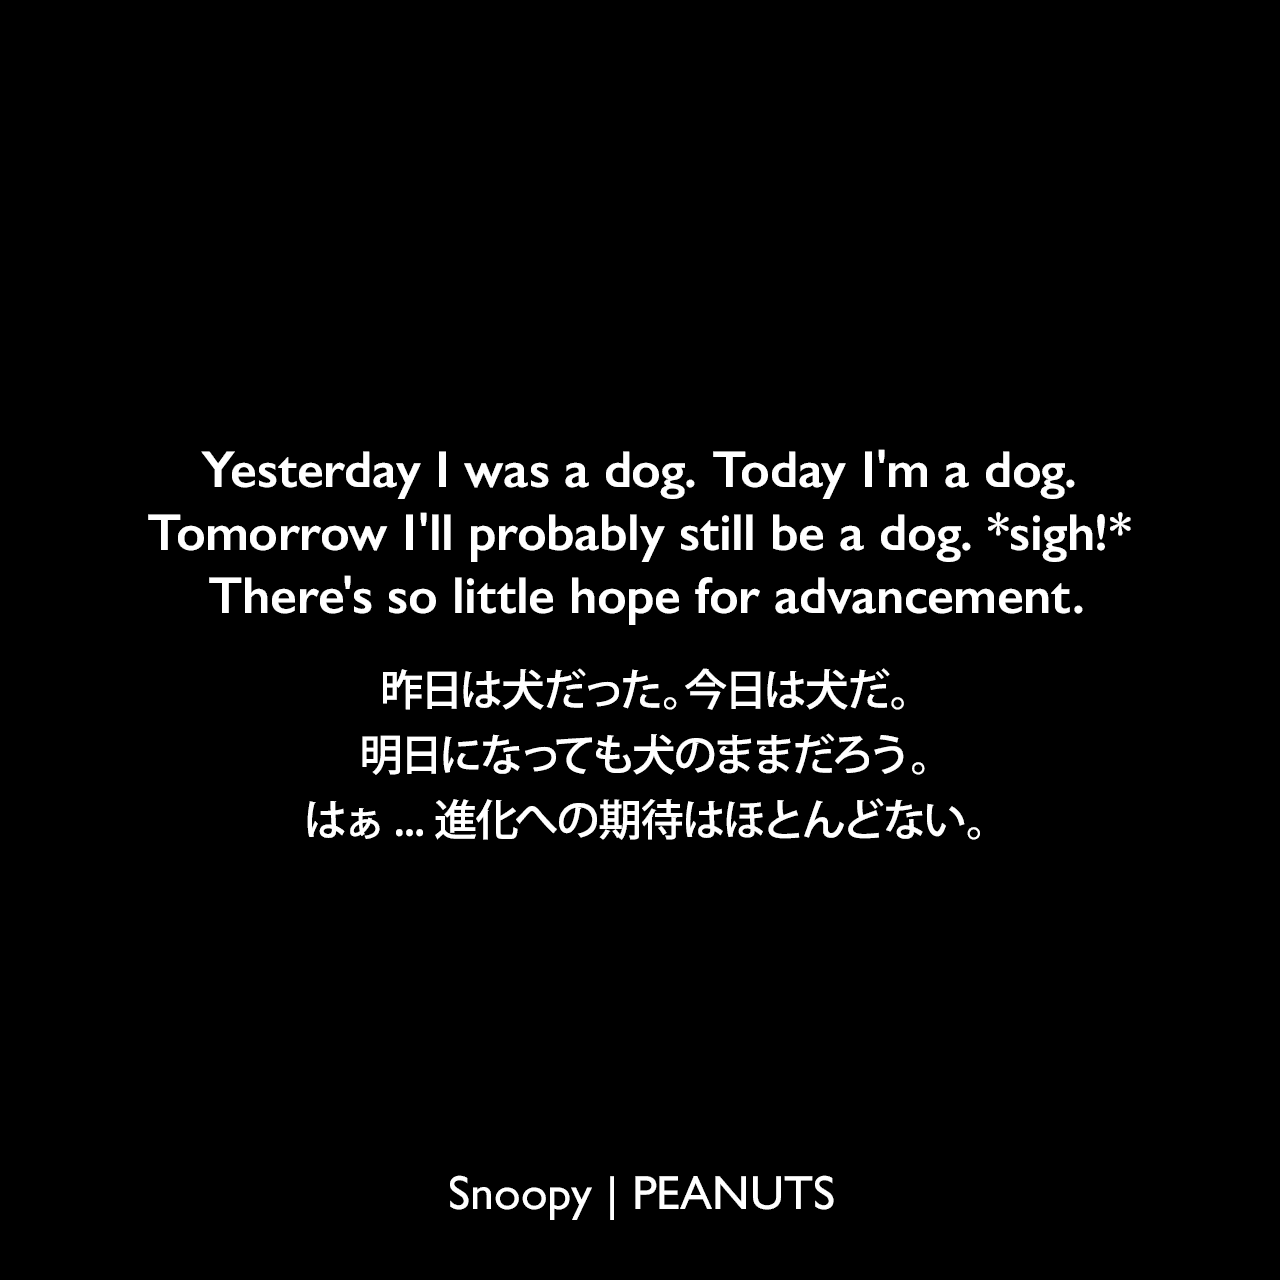 Yesterday I was a dog. Today I'm a dog. Tomorrow I'll probably still be a dog. *sigh!* There's so little hope for advancement.昨日は犬だった。今日は犬だ。明日になっても犬のままだろう。はぁ... 進化への期待はほとんどない。- スヌーピー (1958年2月15日のコミック)Charles Monroe Schulz